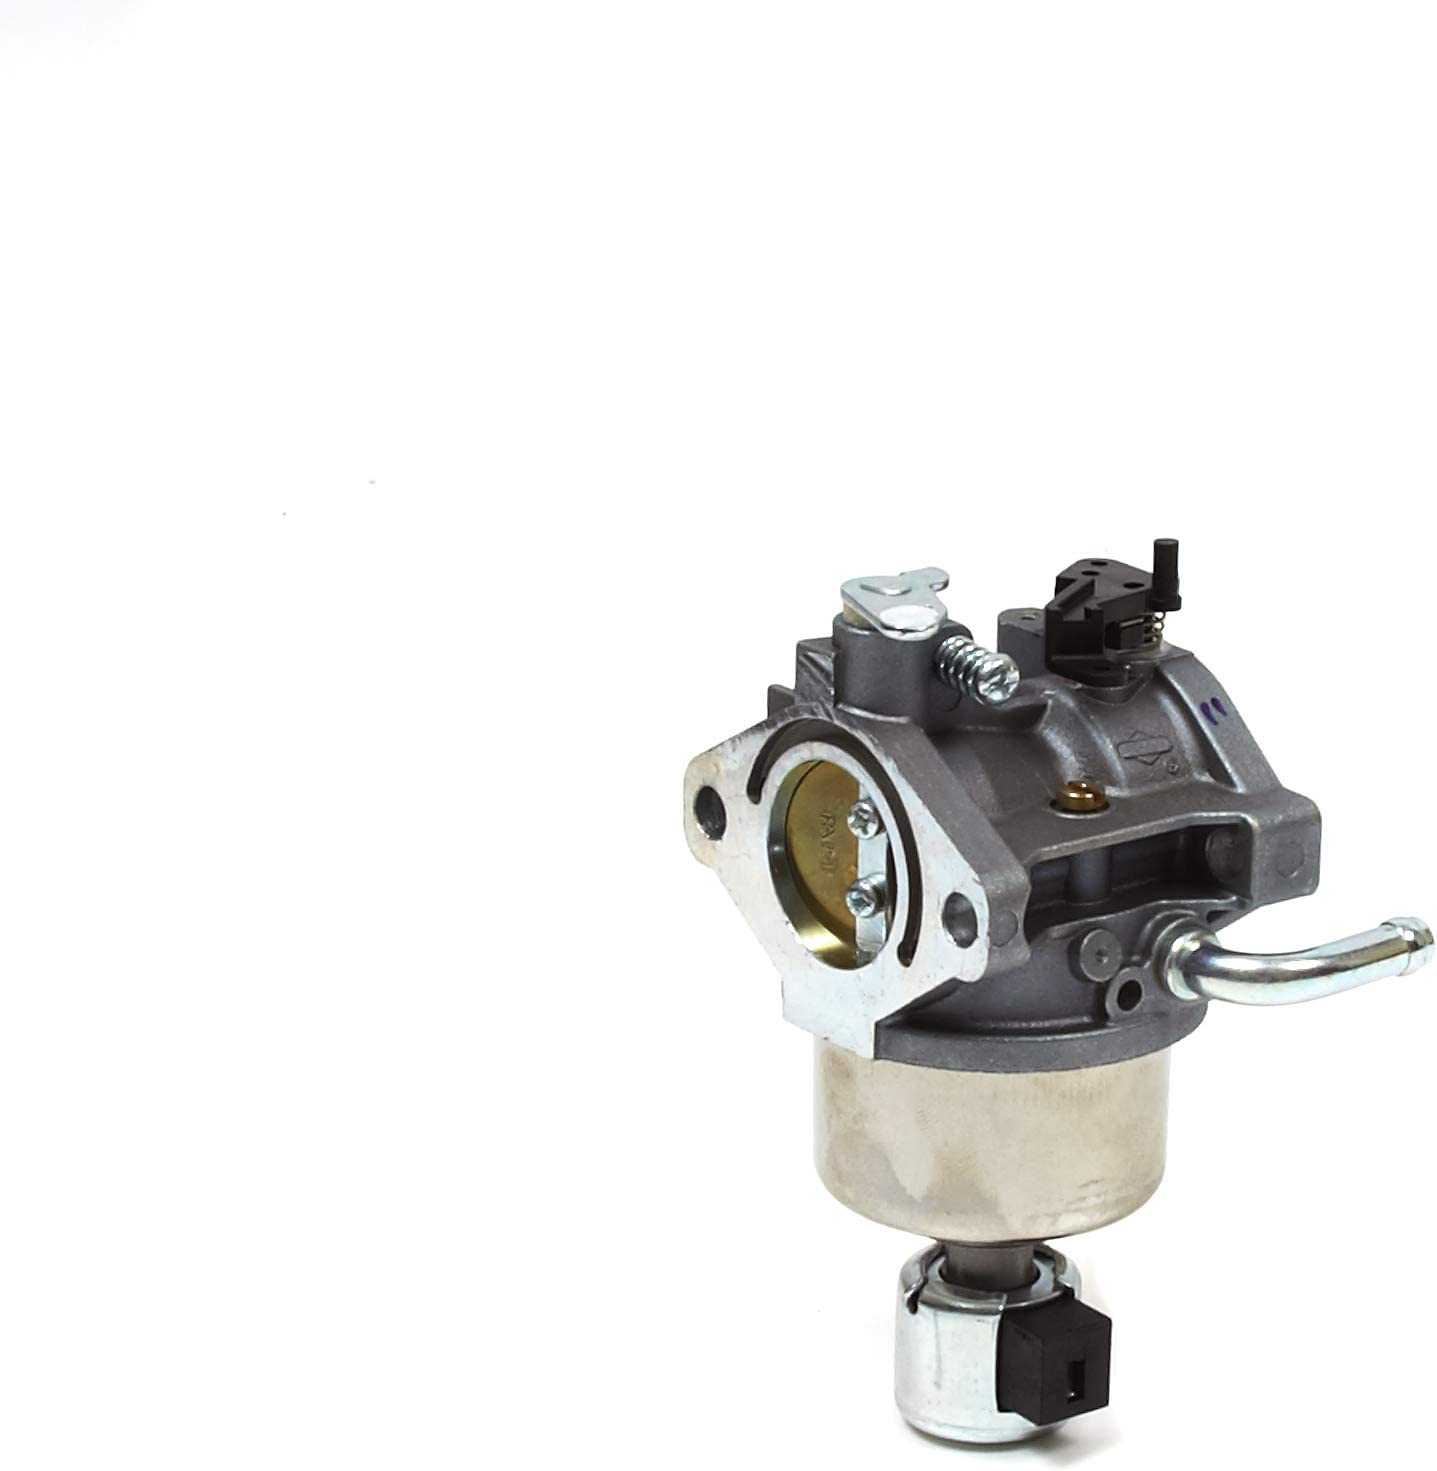 Briggs and Stratton 594605 Single Cylinder Engine Replacement Carburetor